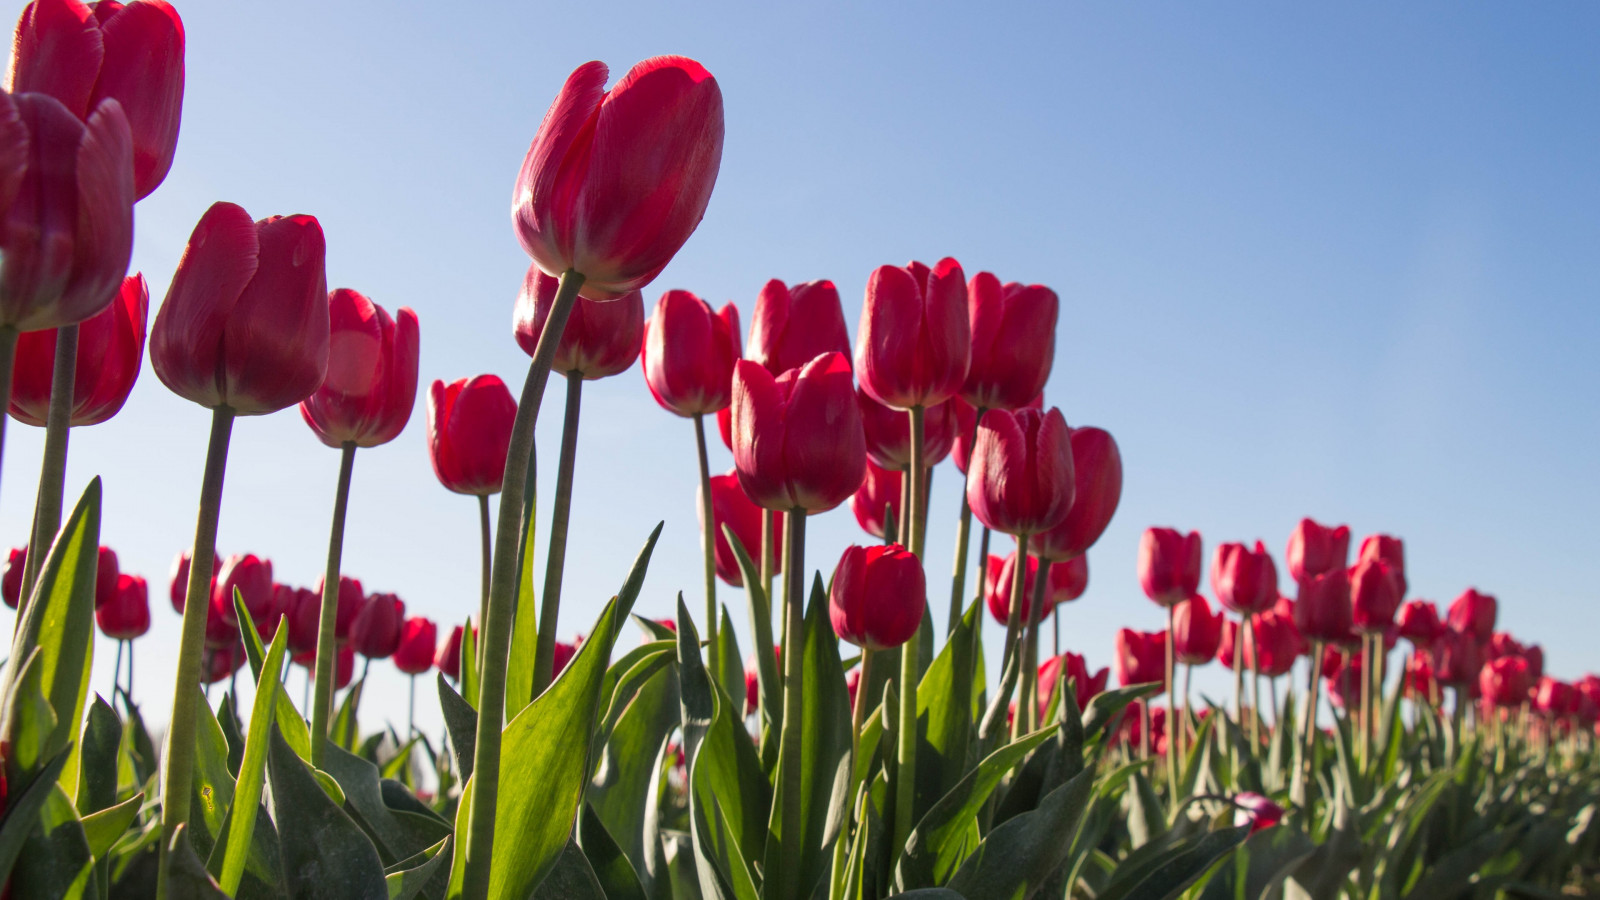 Red tulips wallpaper 1600x900